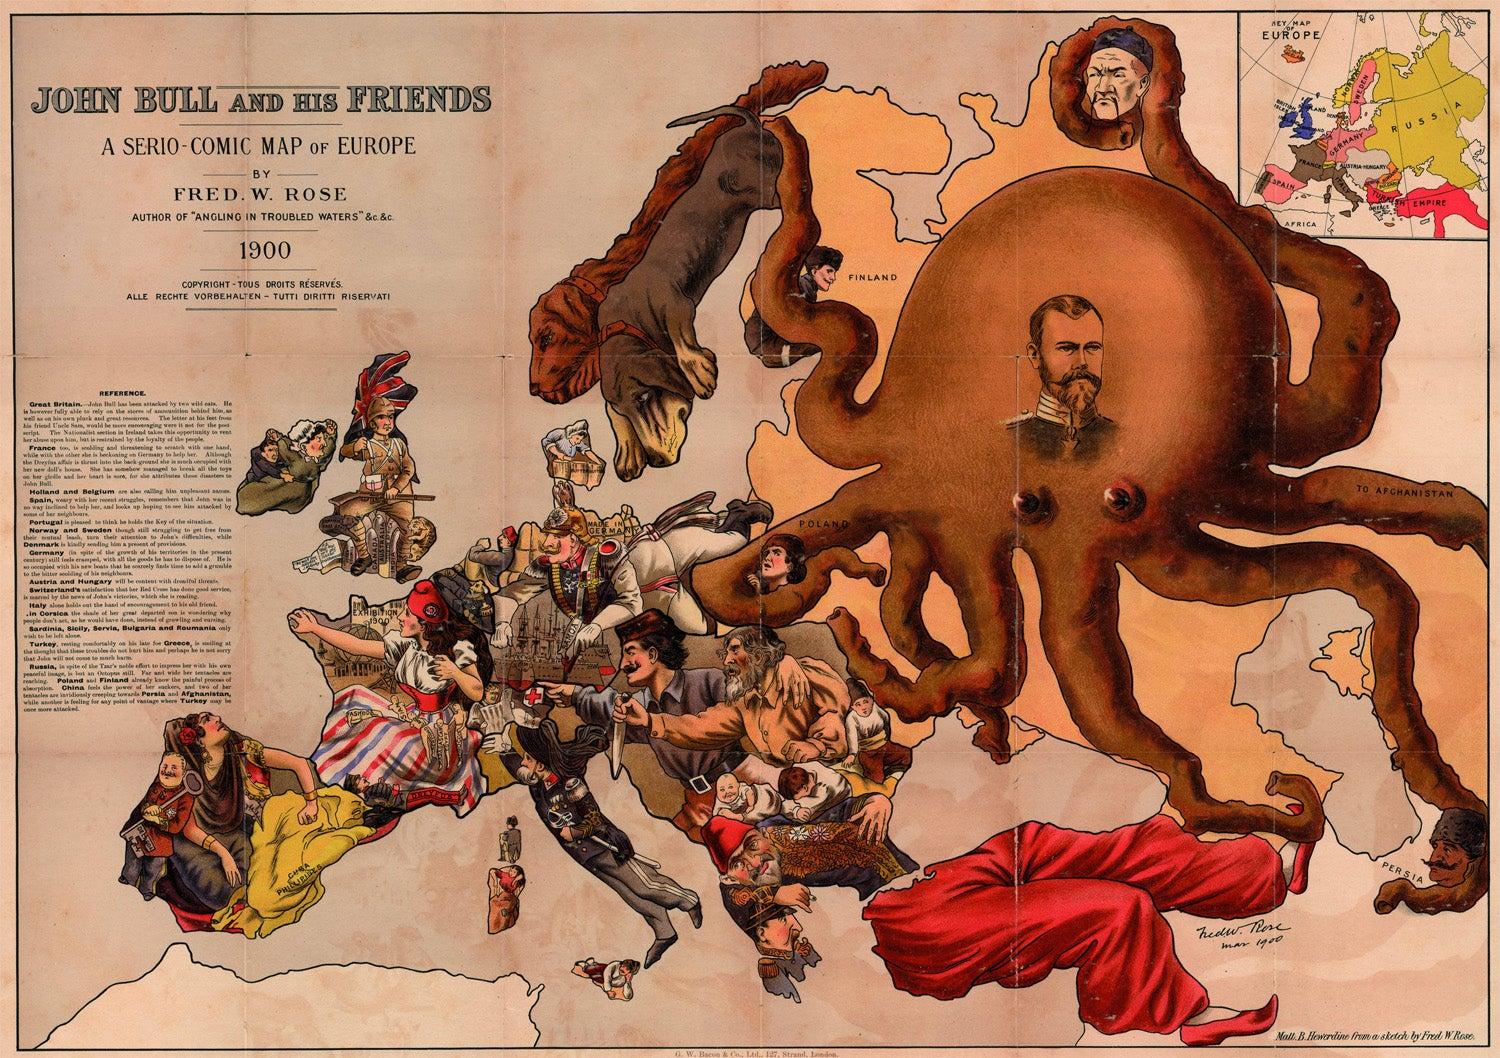 21 Bizarre Maps That Depict Nations As Animals, People, and Monsters